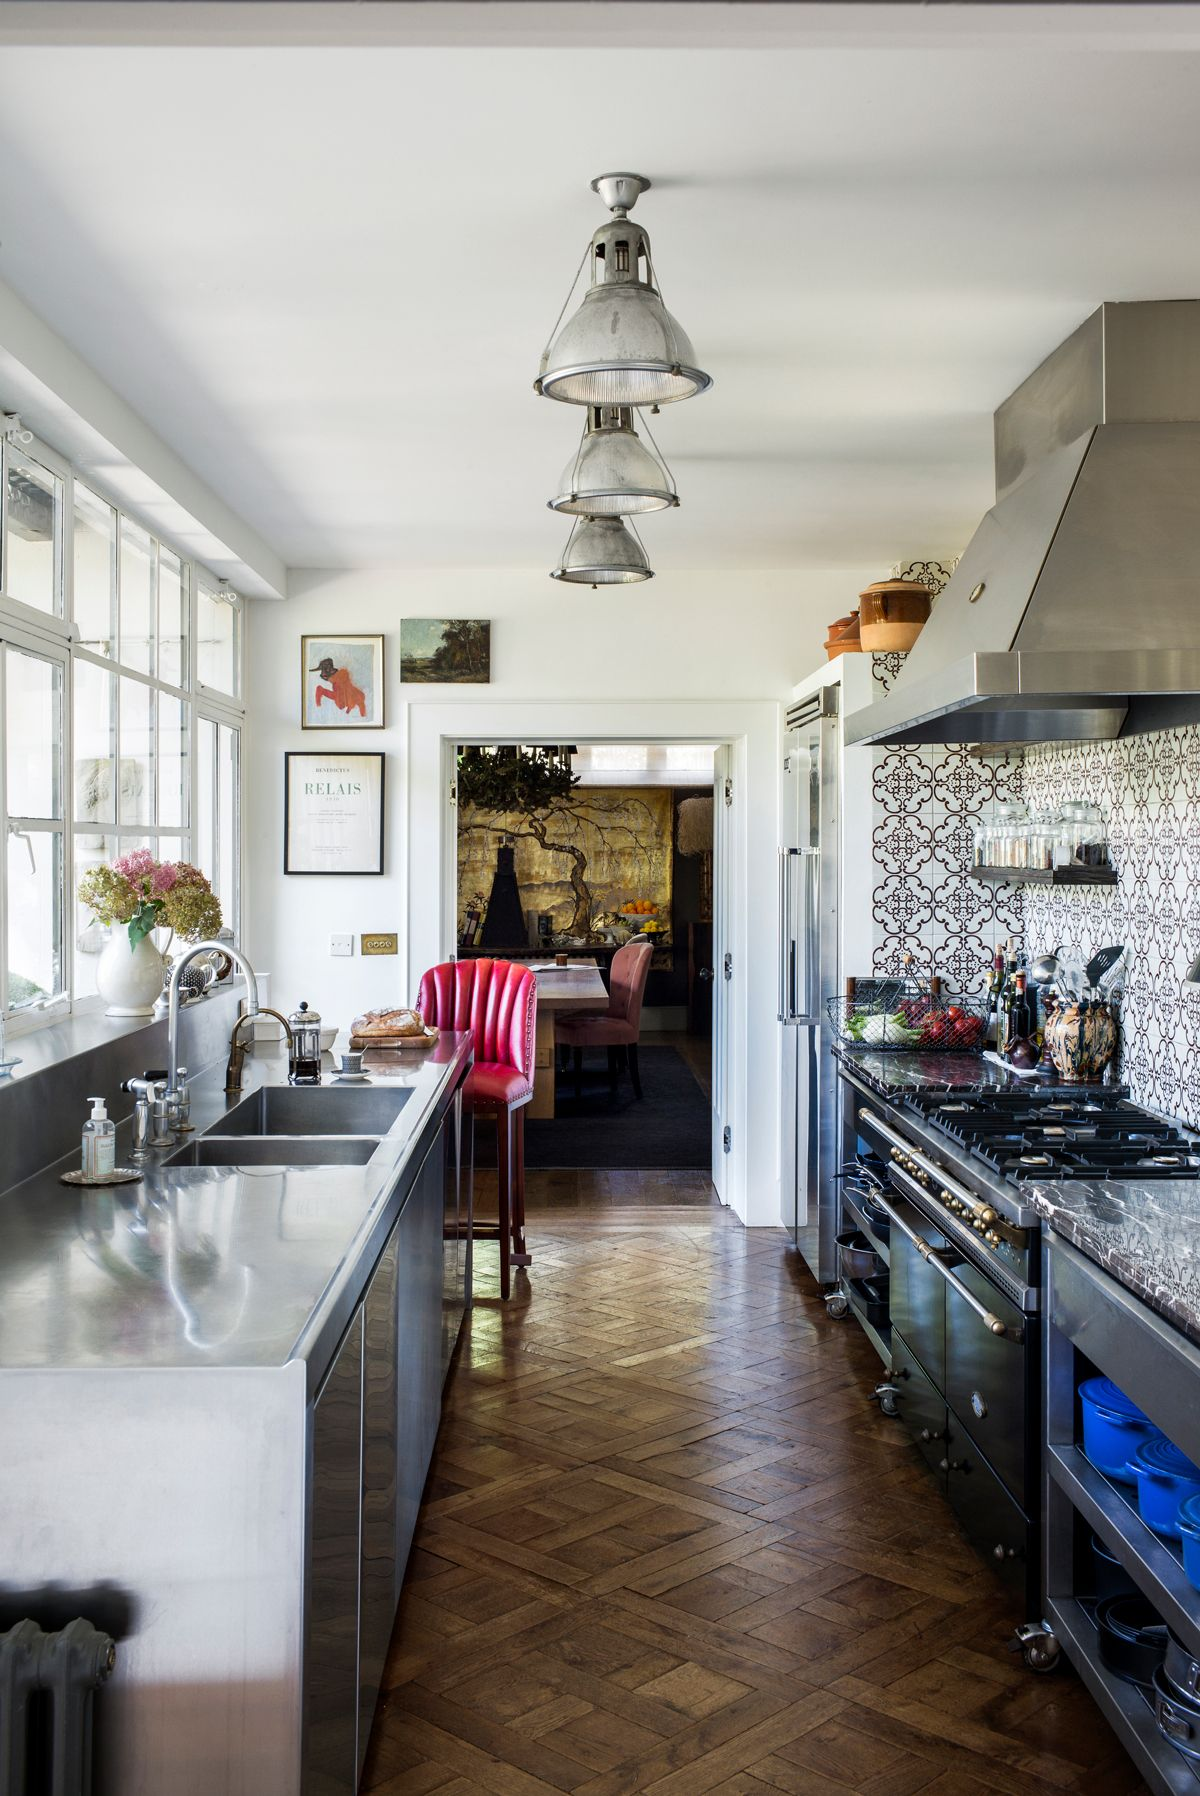 Explore a quirky l shaped family home in southwest london